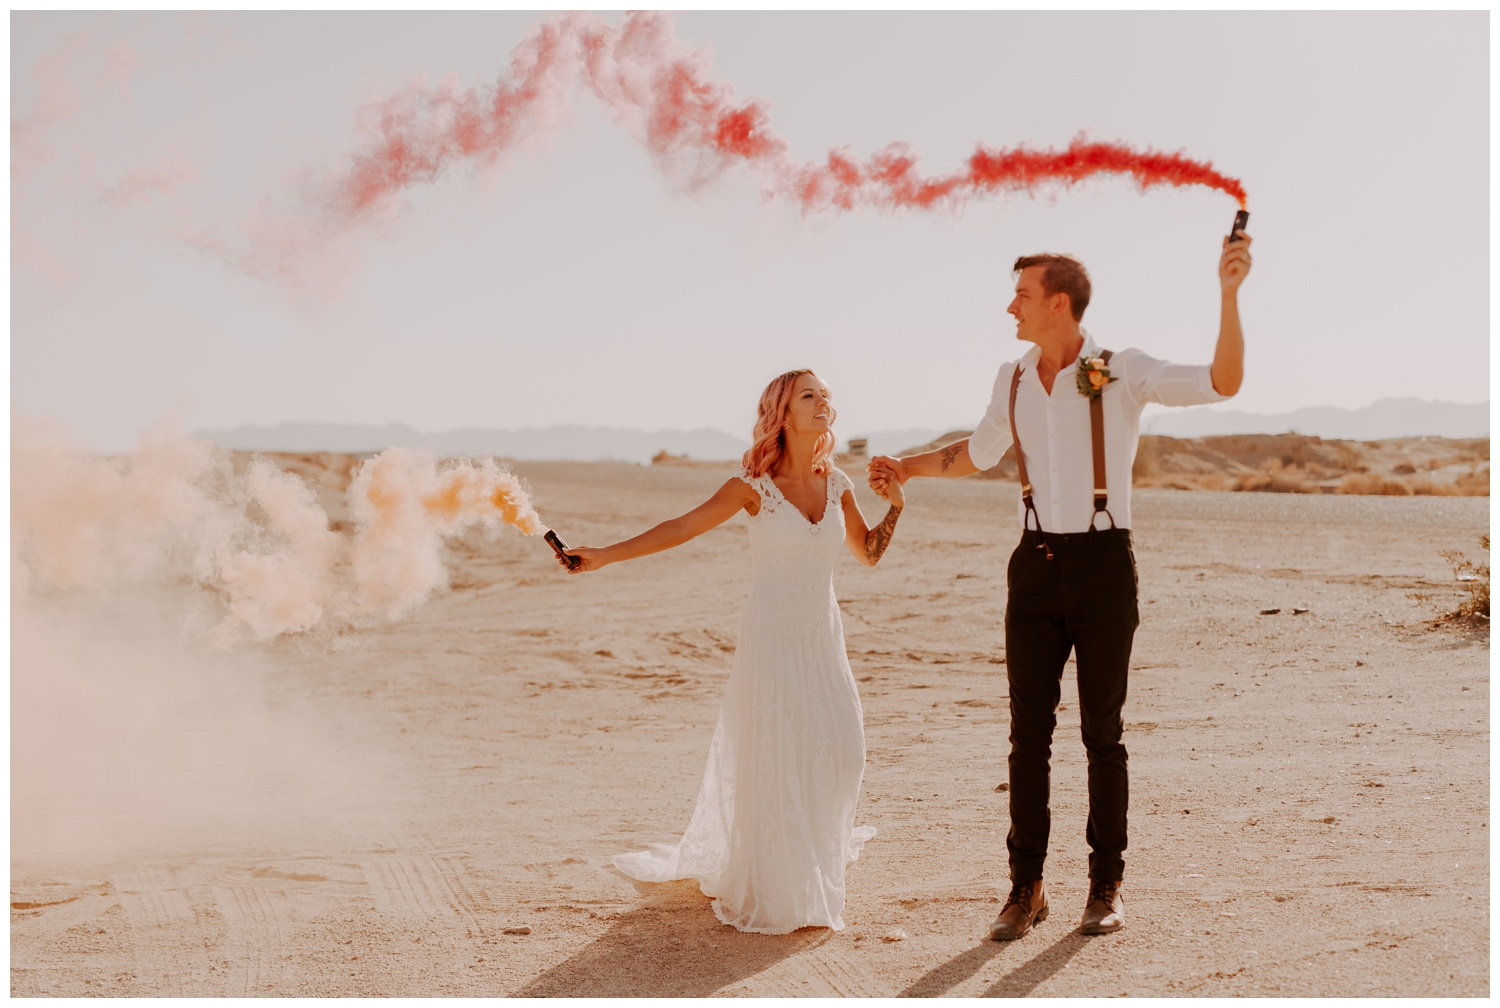 Salvation Mountain Elopement Palm Springs Pink Hair Bride - Jessica Heron Images_0147.jpg